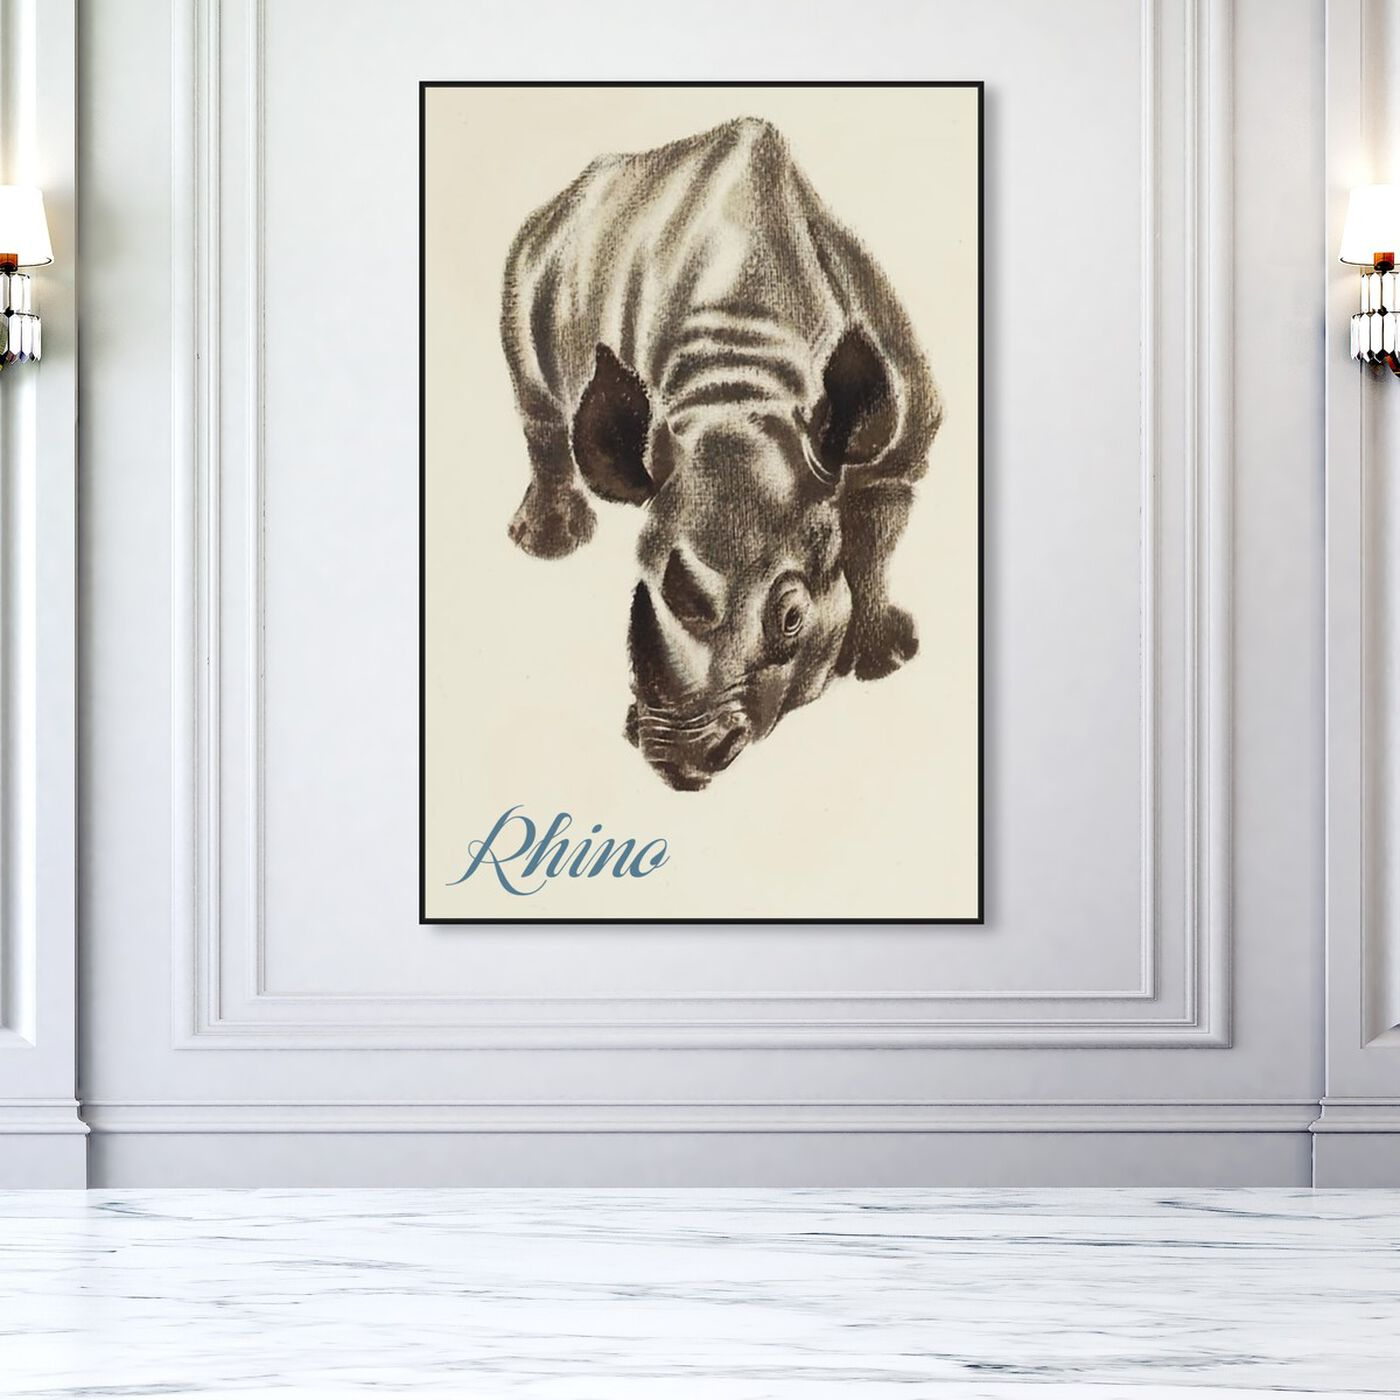 Hanging view of Rhino featuring animals and zoo and wild animals art.